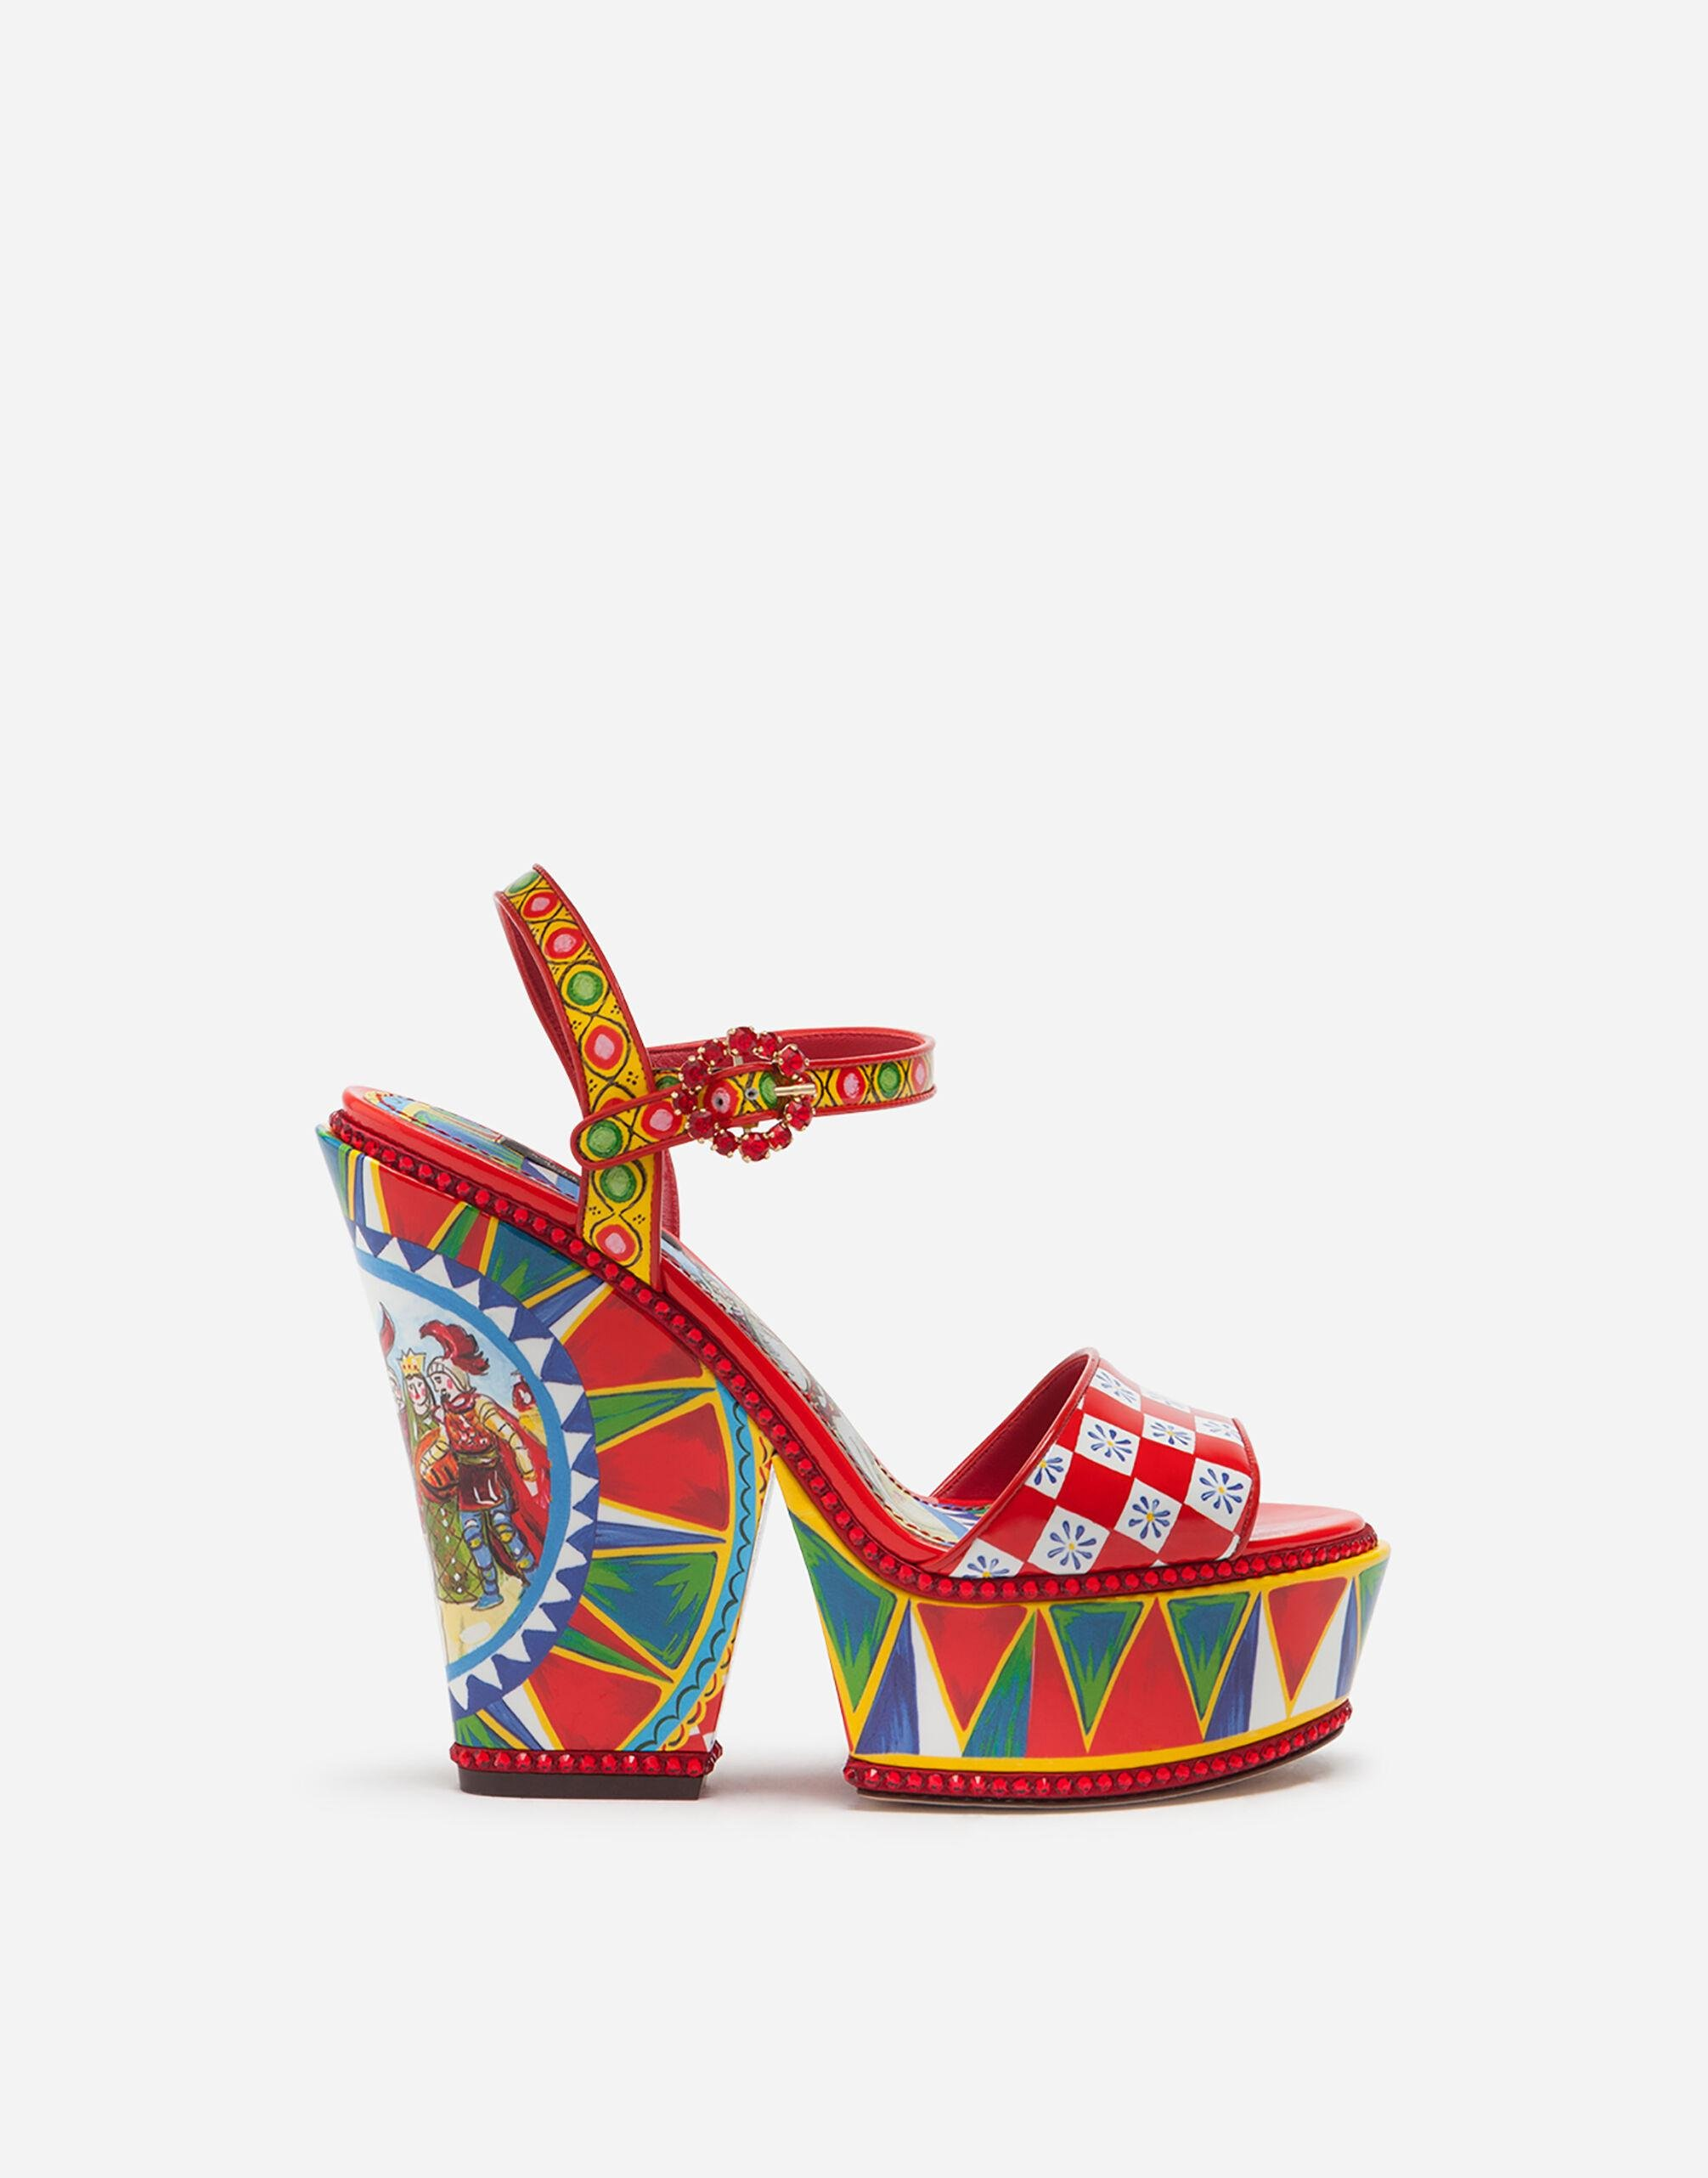 Patent leather sandals with wedge heel and Sicilian carretto print